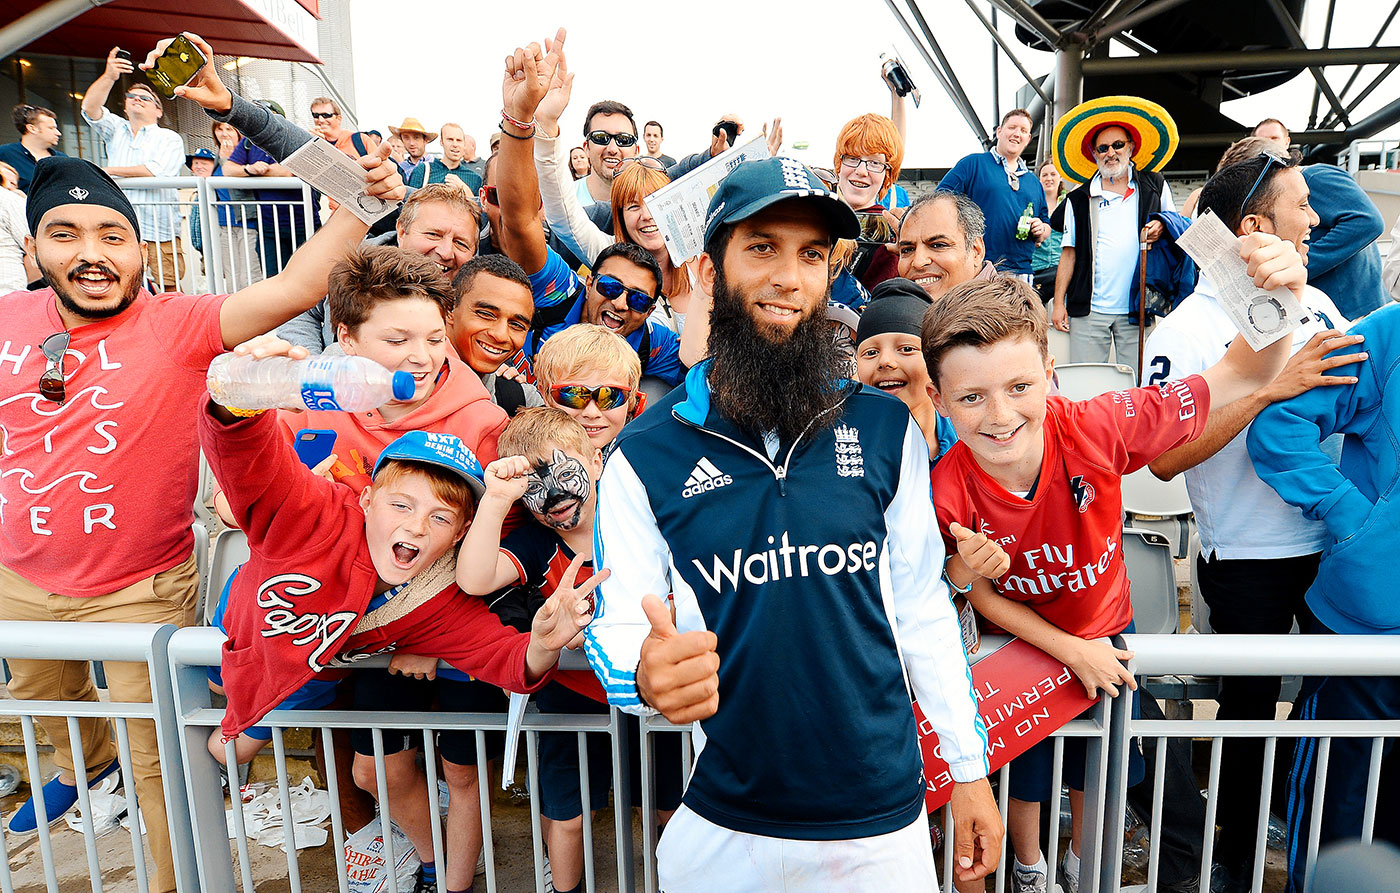 Moeen Ali mingles with fans after the Test win